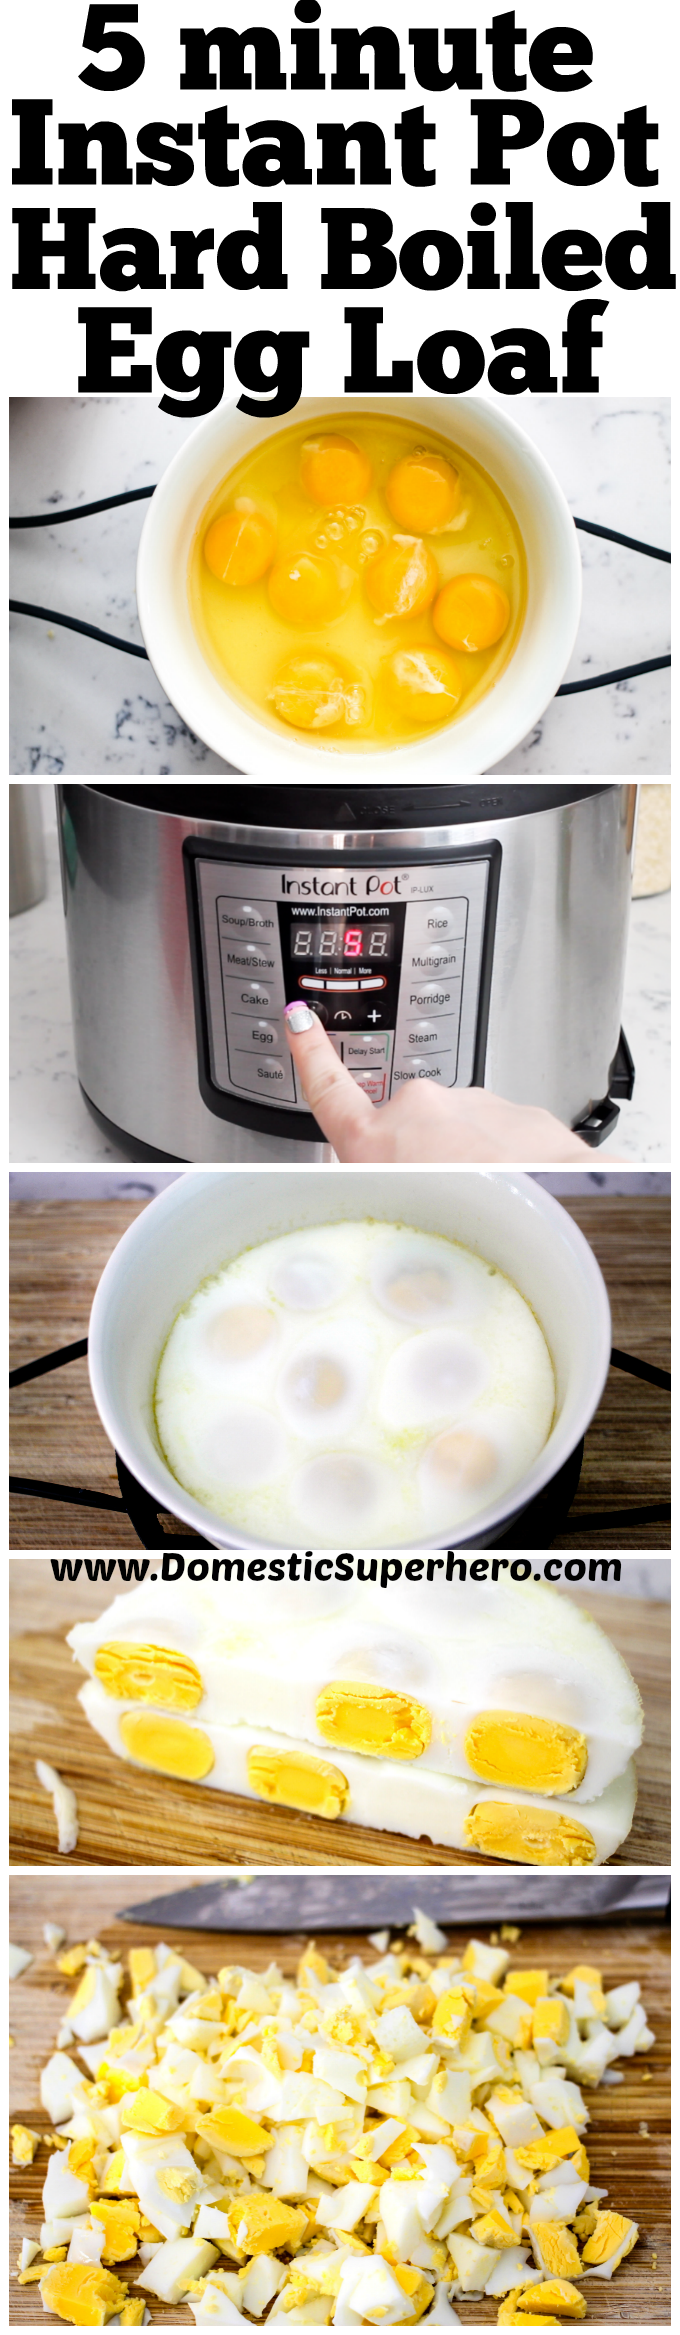 In five minutes you can have a whole bunch of hardboiled eggs which are perfect for egg salad! No peeling or ice bath for this Instant Pot Hard Boiled Egg Loaf!